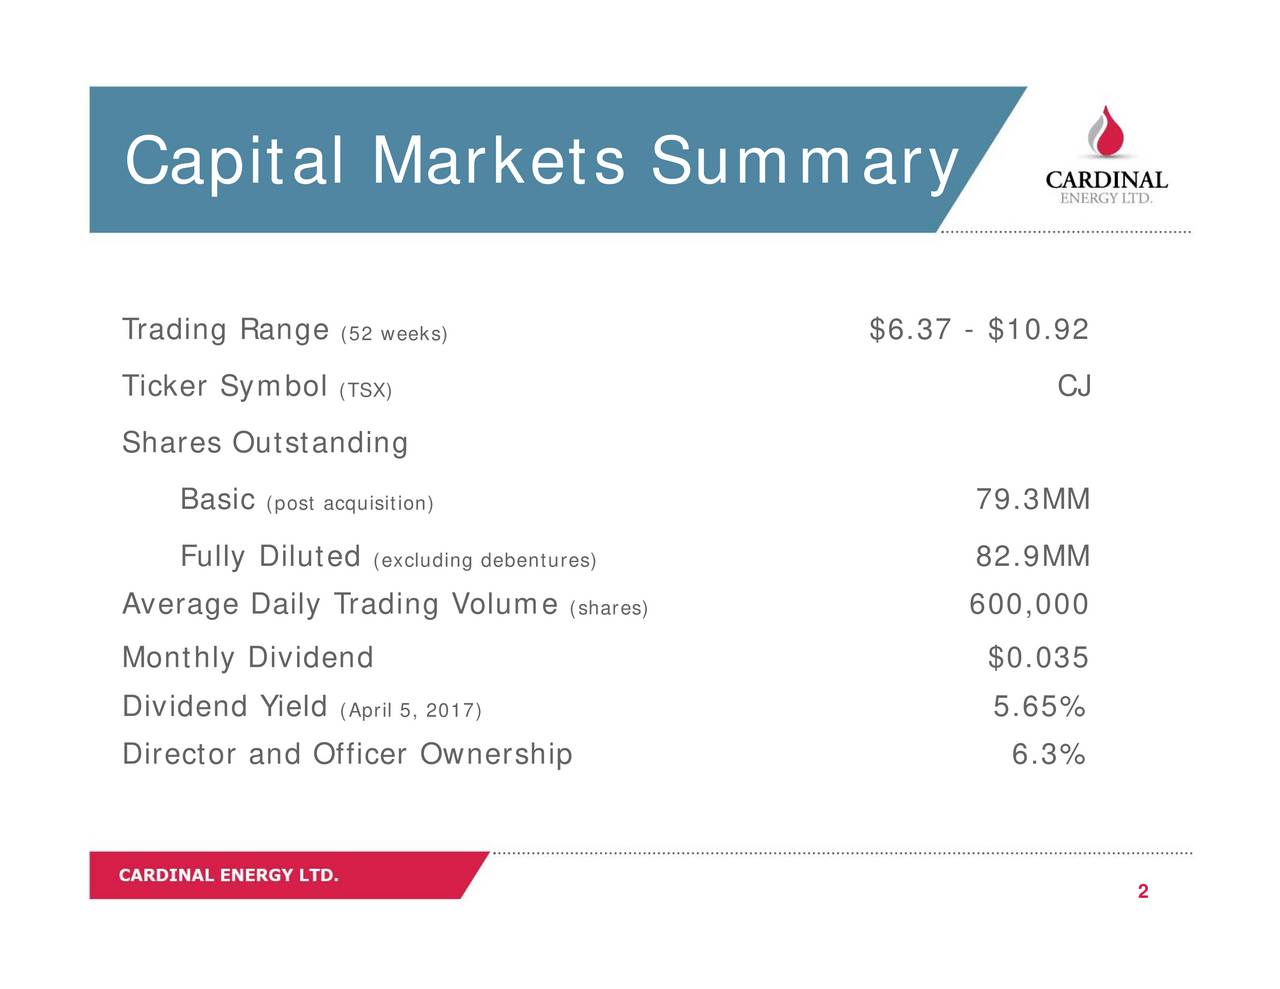 CJ 79.8M2.9MM 5.65% 600,000 $6.37 - $10.92 (shares) (excluding debentures) (52 (TSX)) (April 5, 2017) (post acquisition) Basiclly Diluted Capital MaTradingShares OutAsanraigDaily Trading Volumeer Ownership